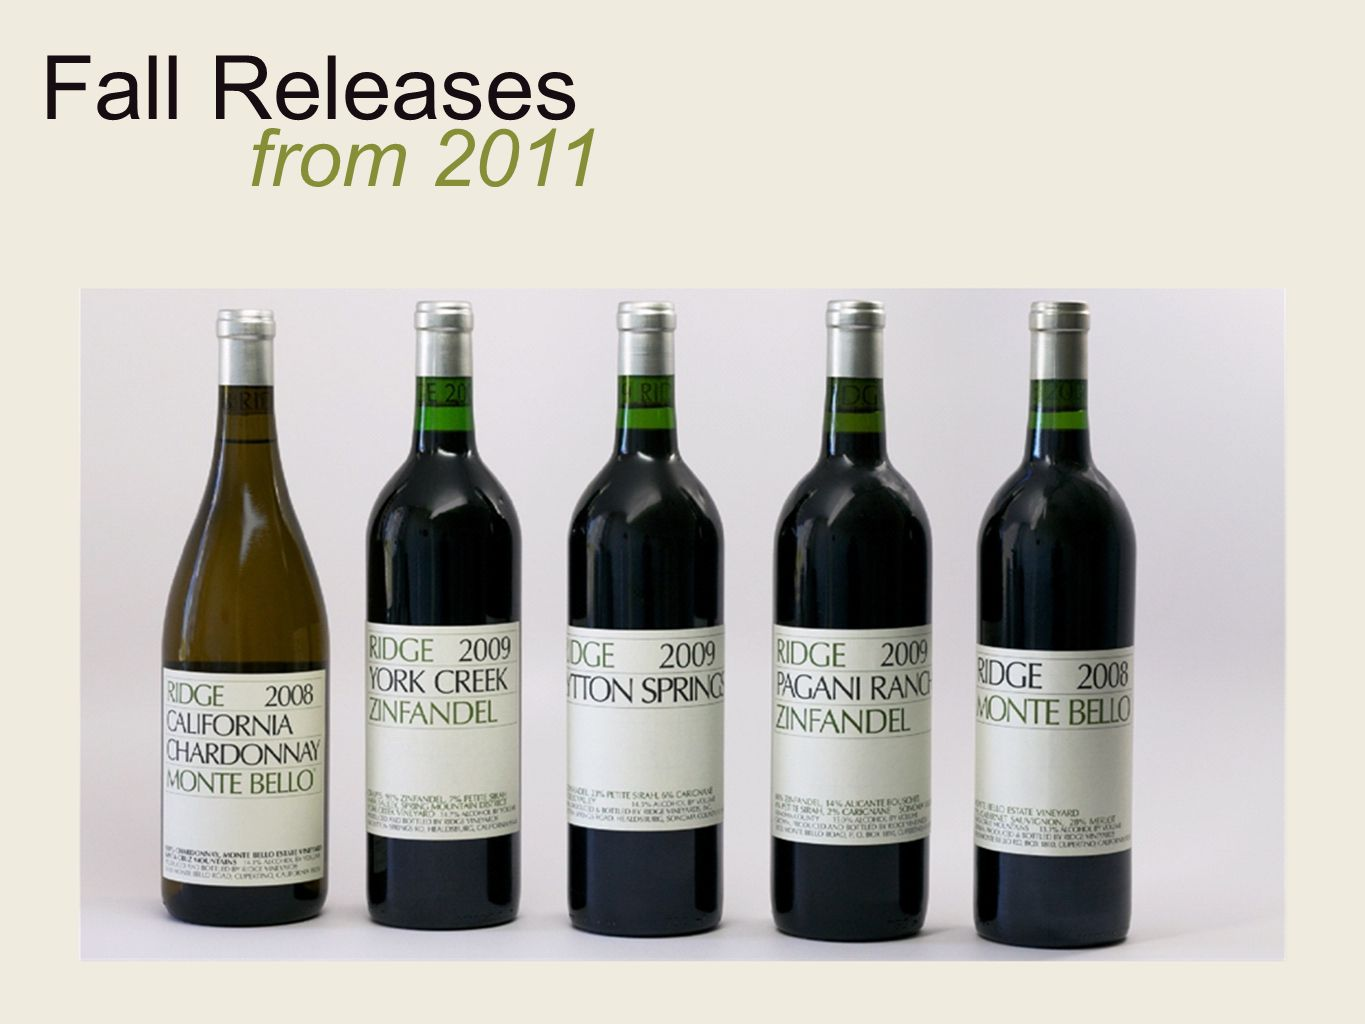 Fall Releases from 2011